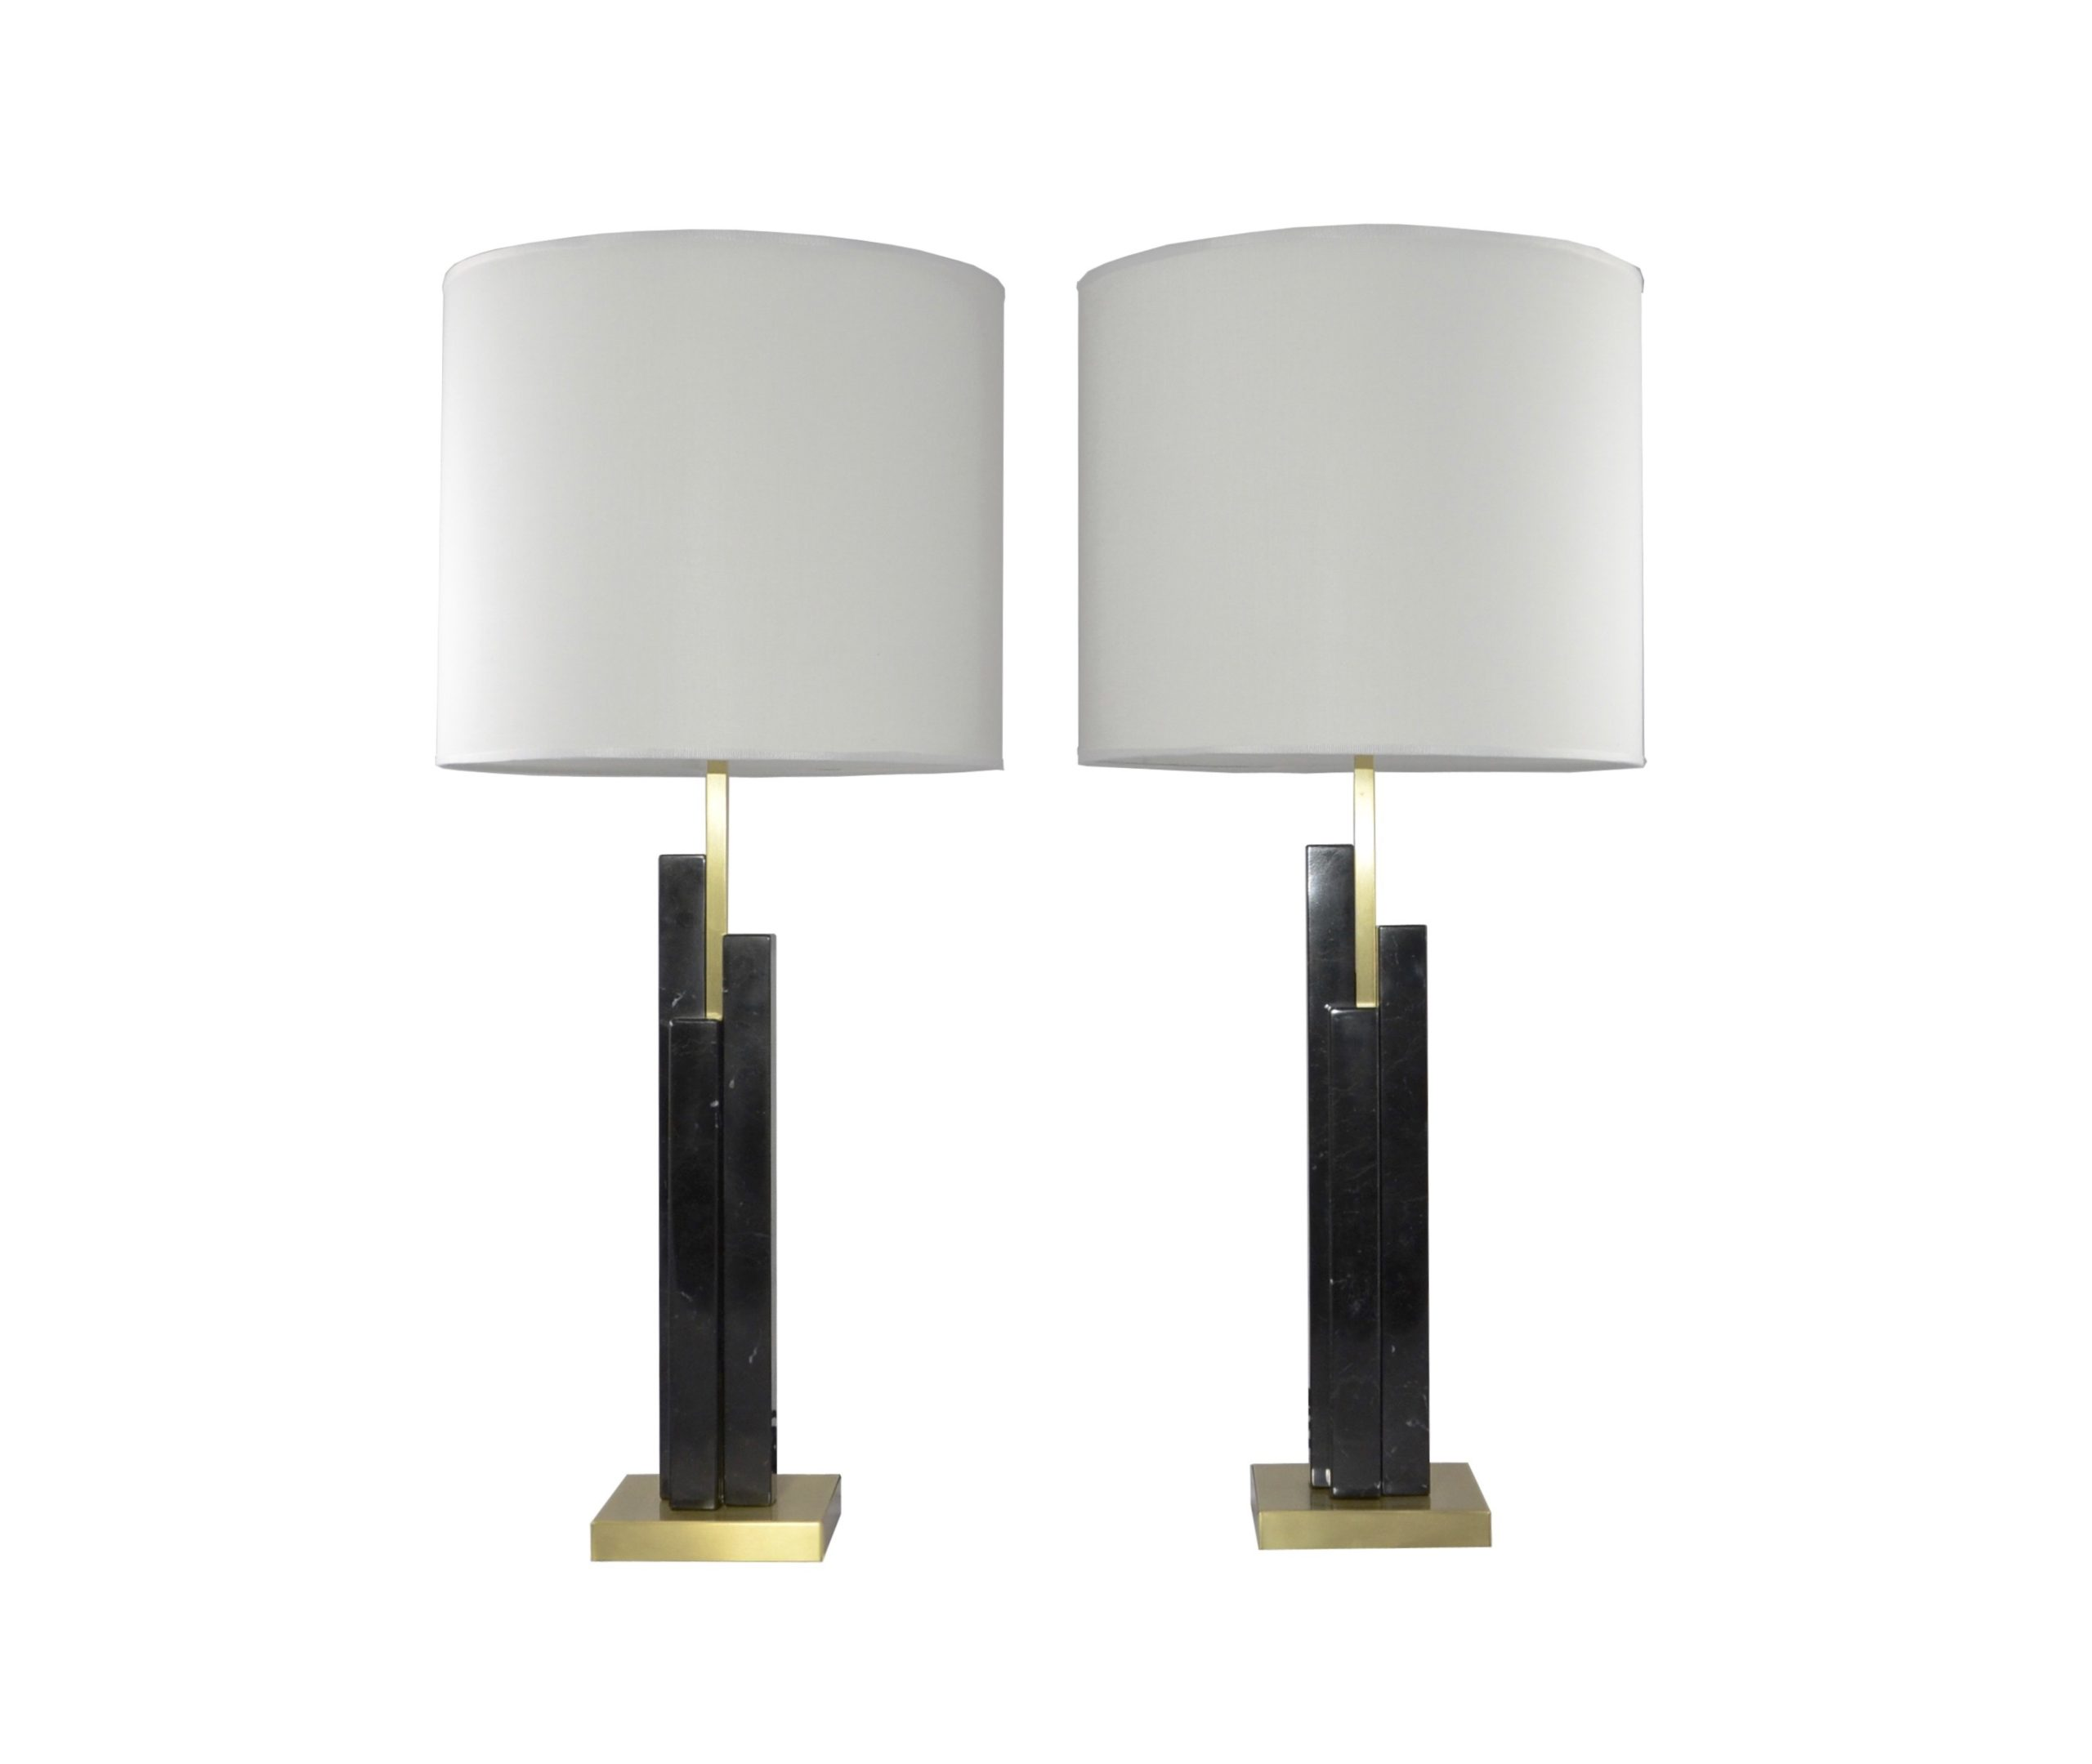 cosulich_interiors_and_antiques_products_new_york_design_bespoke_art_deco_design_skyline_pair_black_marble_satin_brass_table_lamp-scaled-1